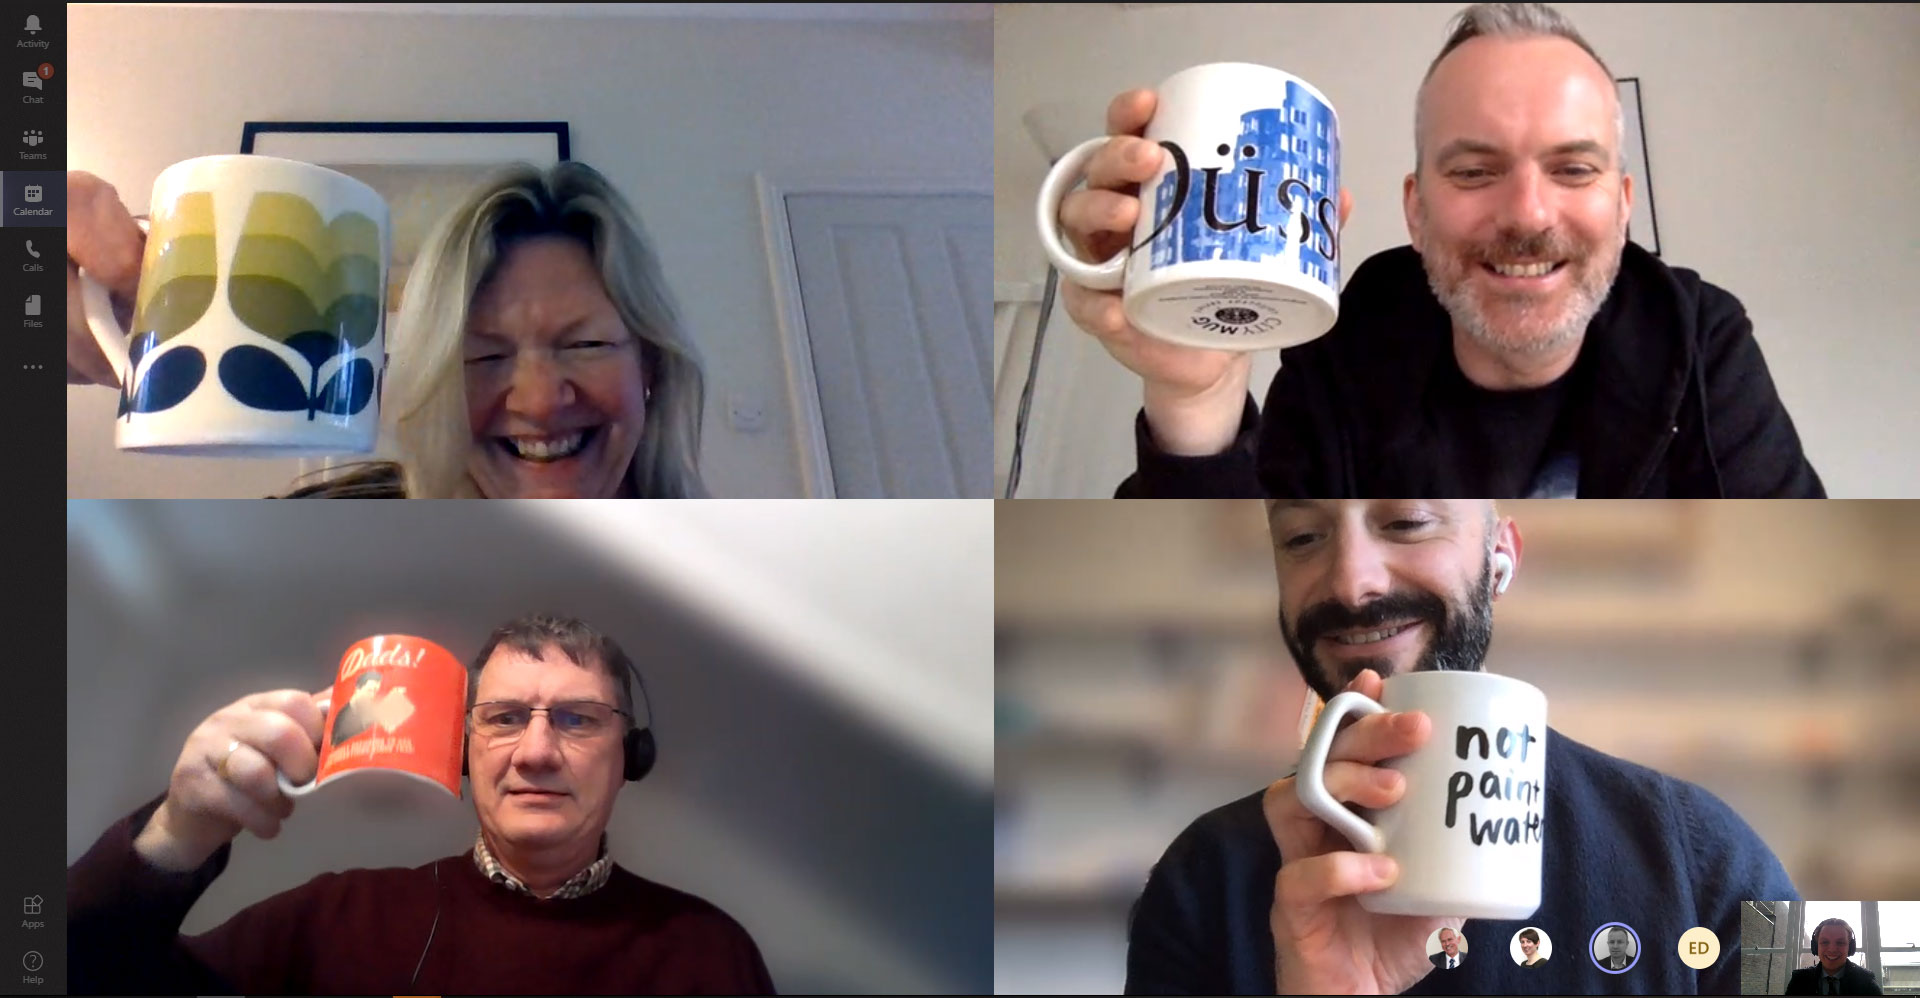 BRE team video conference